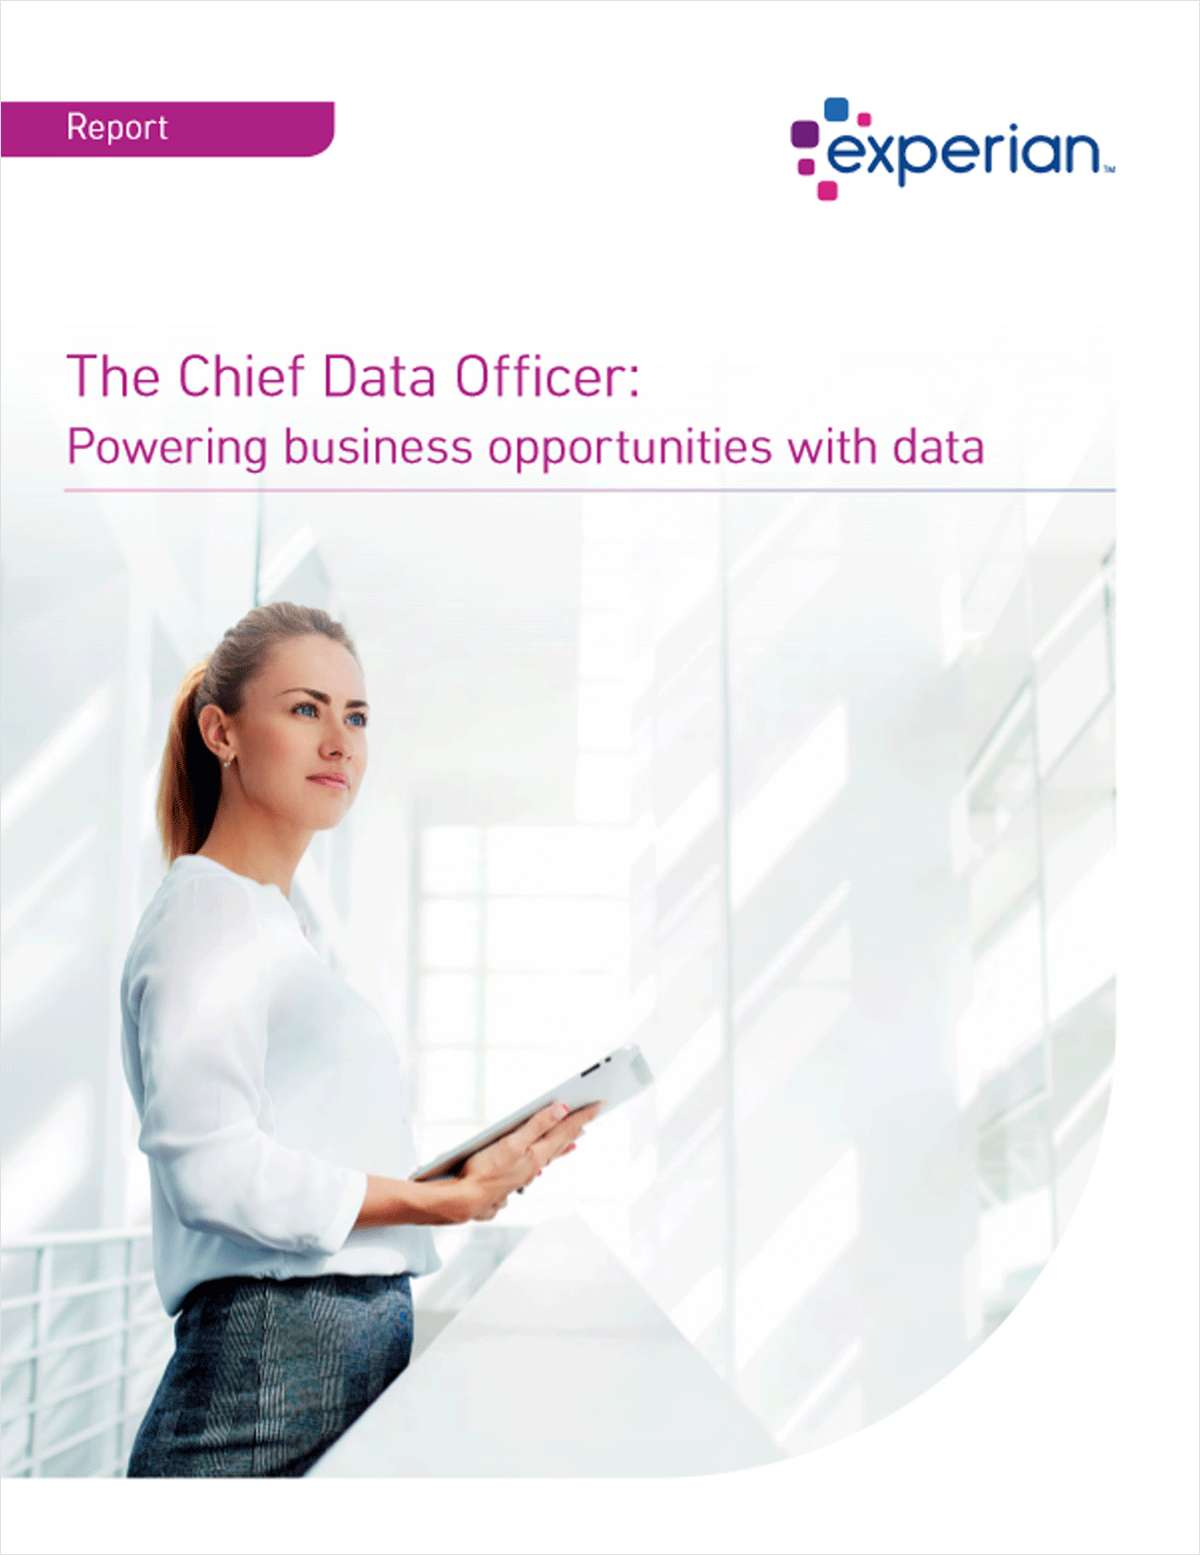 The Chief Data Officer: Powering business opportunities with data